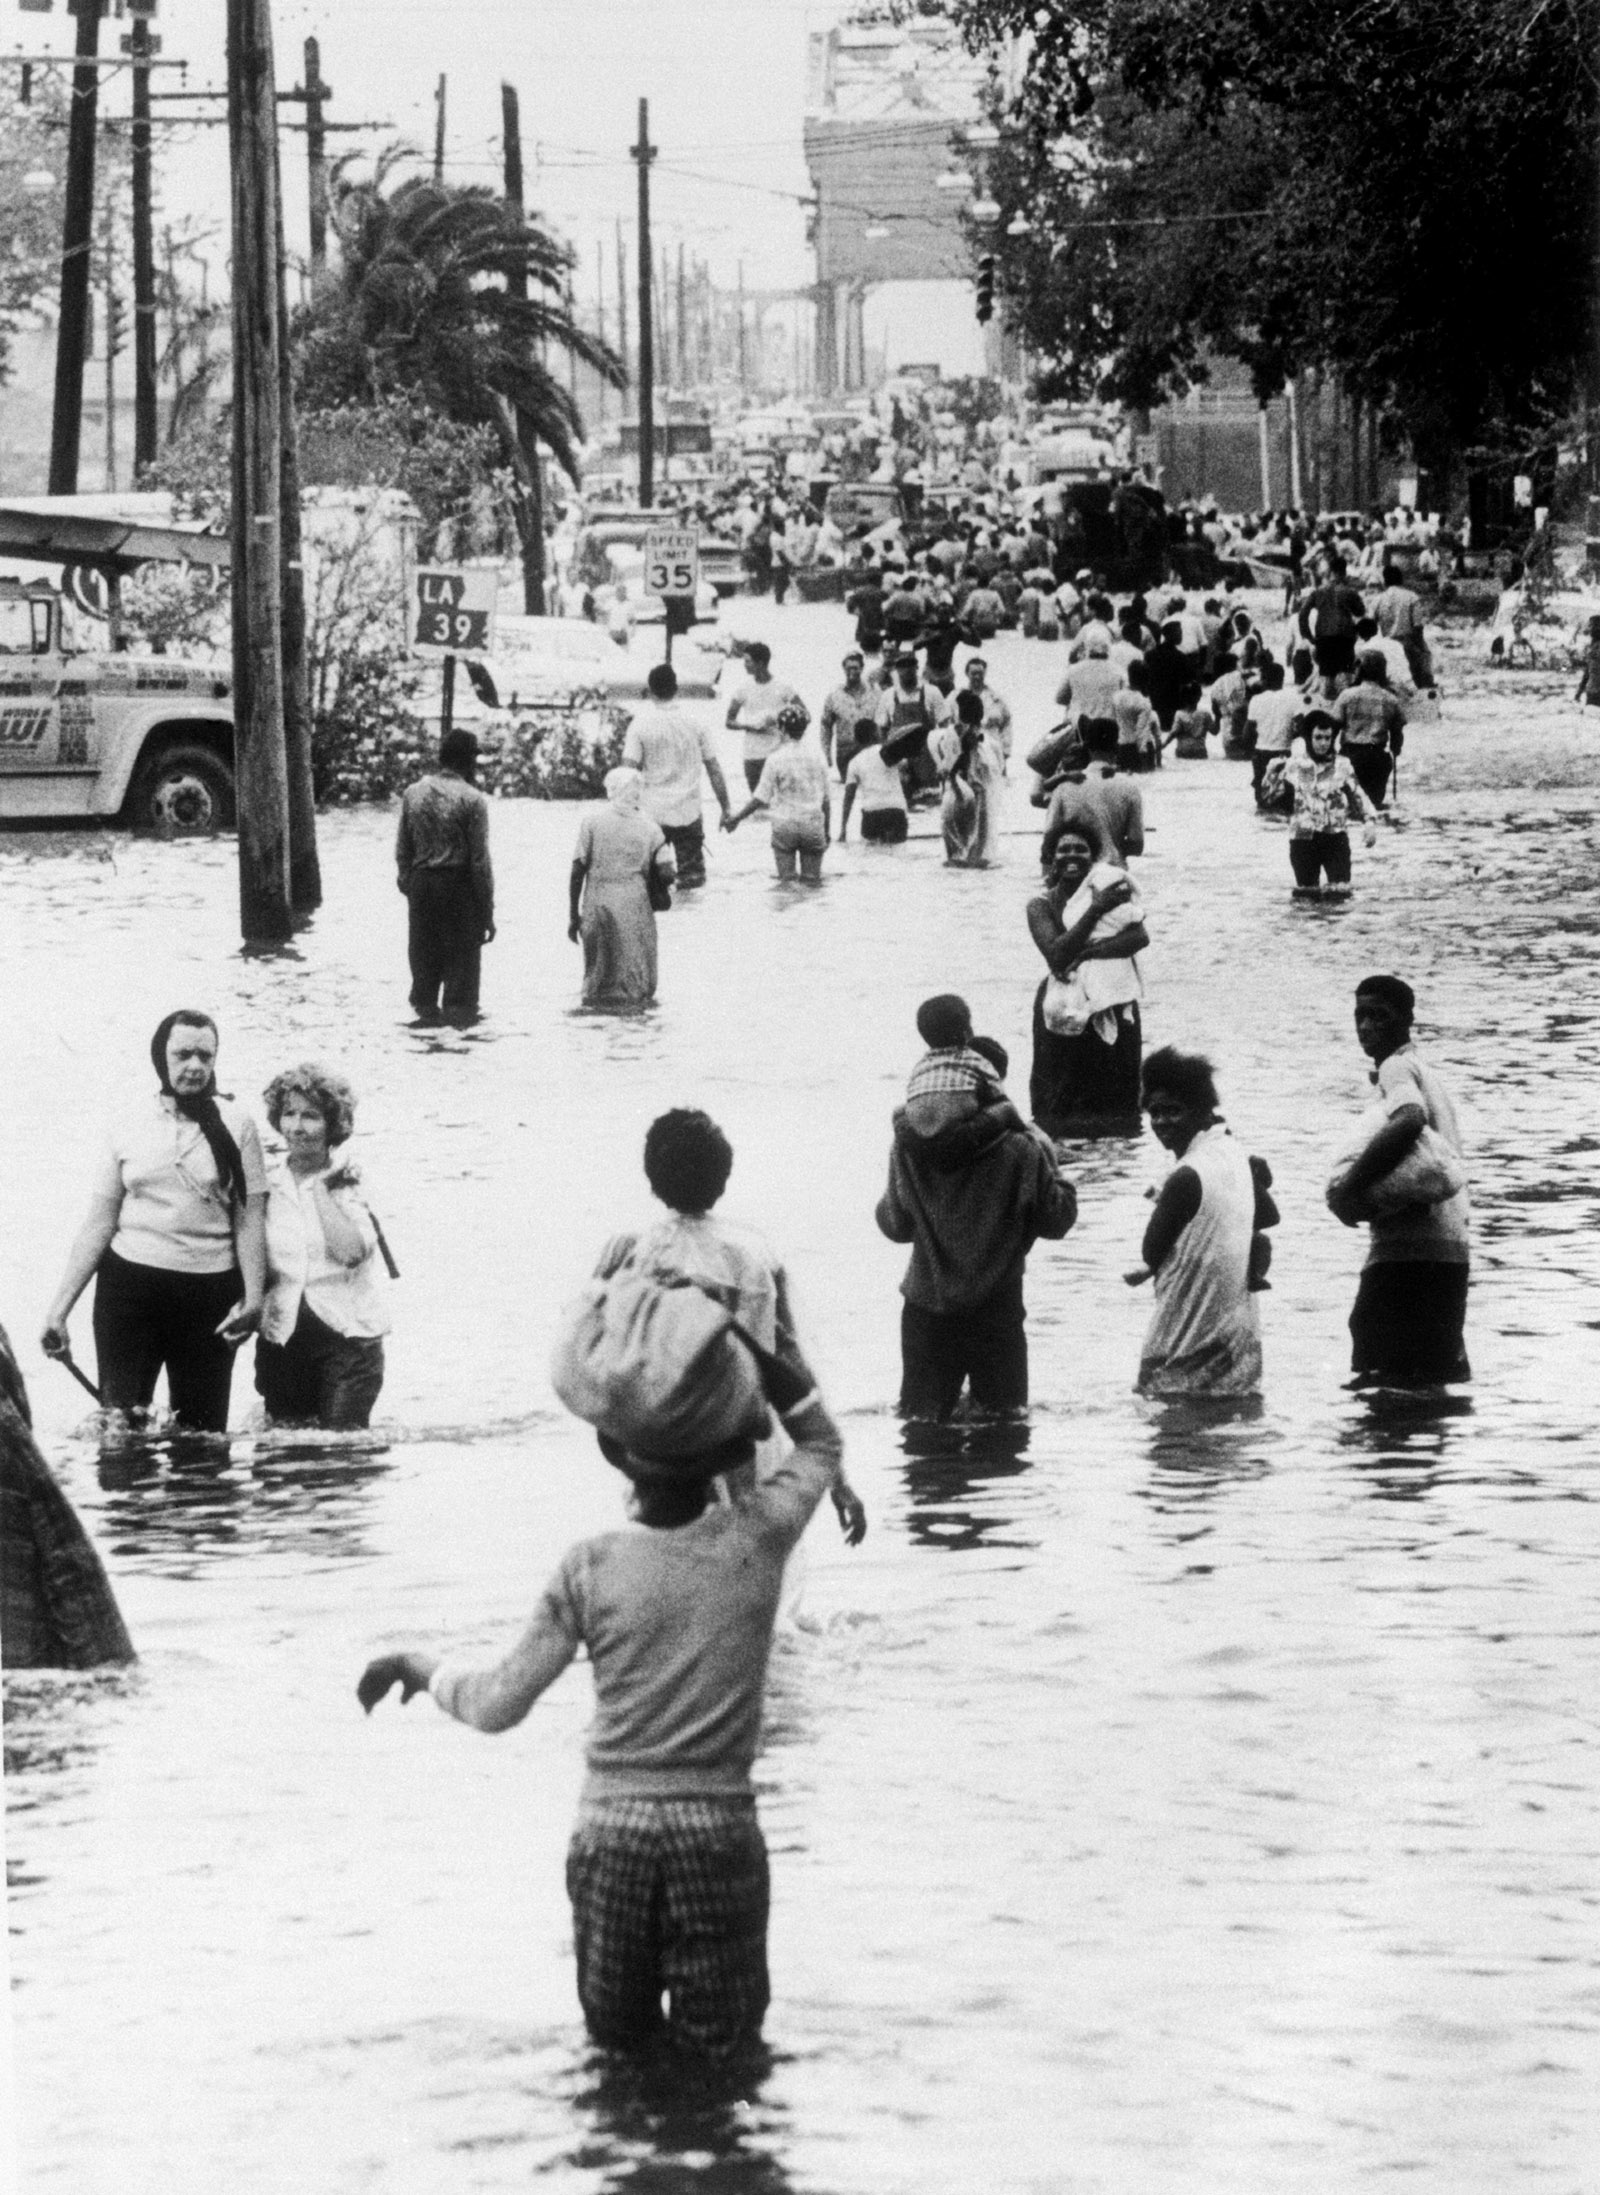 People evacuating flooded areas after Hurricane Betsy, New Orleans